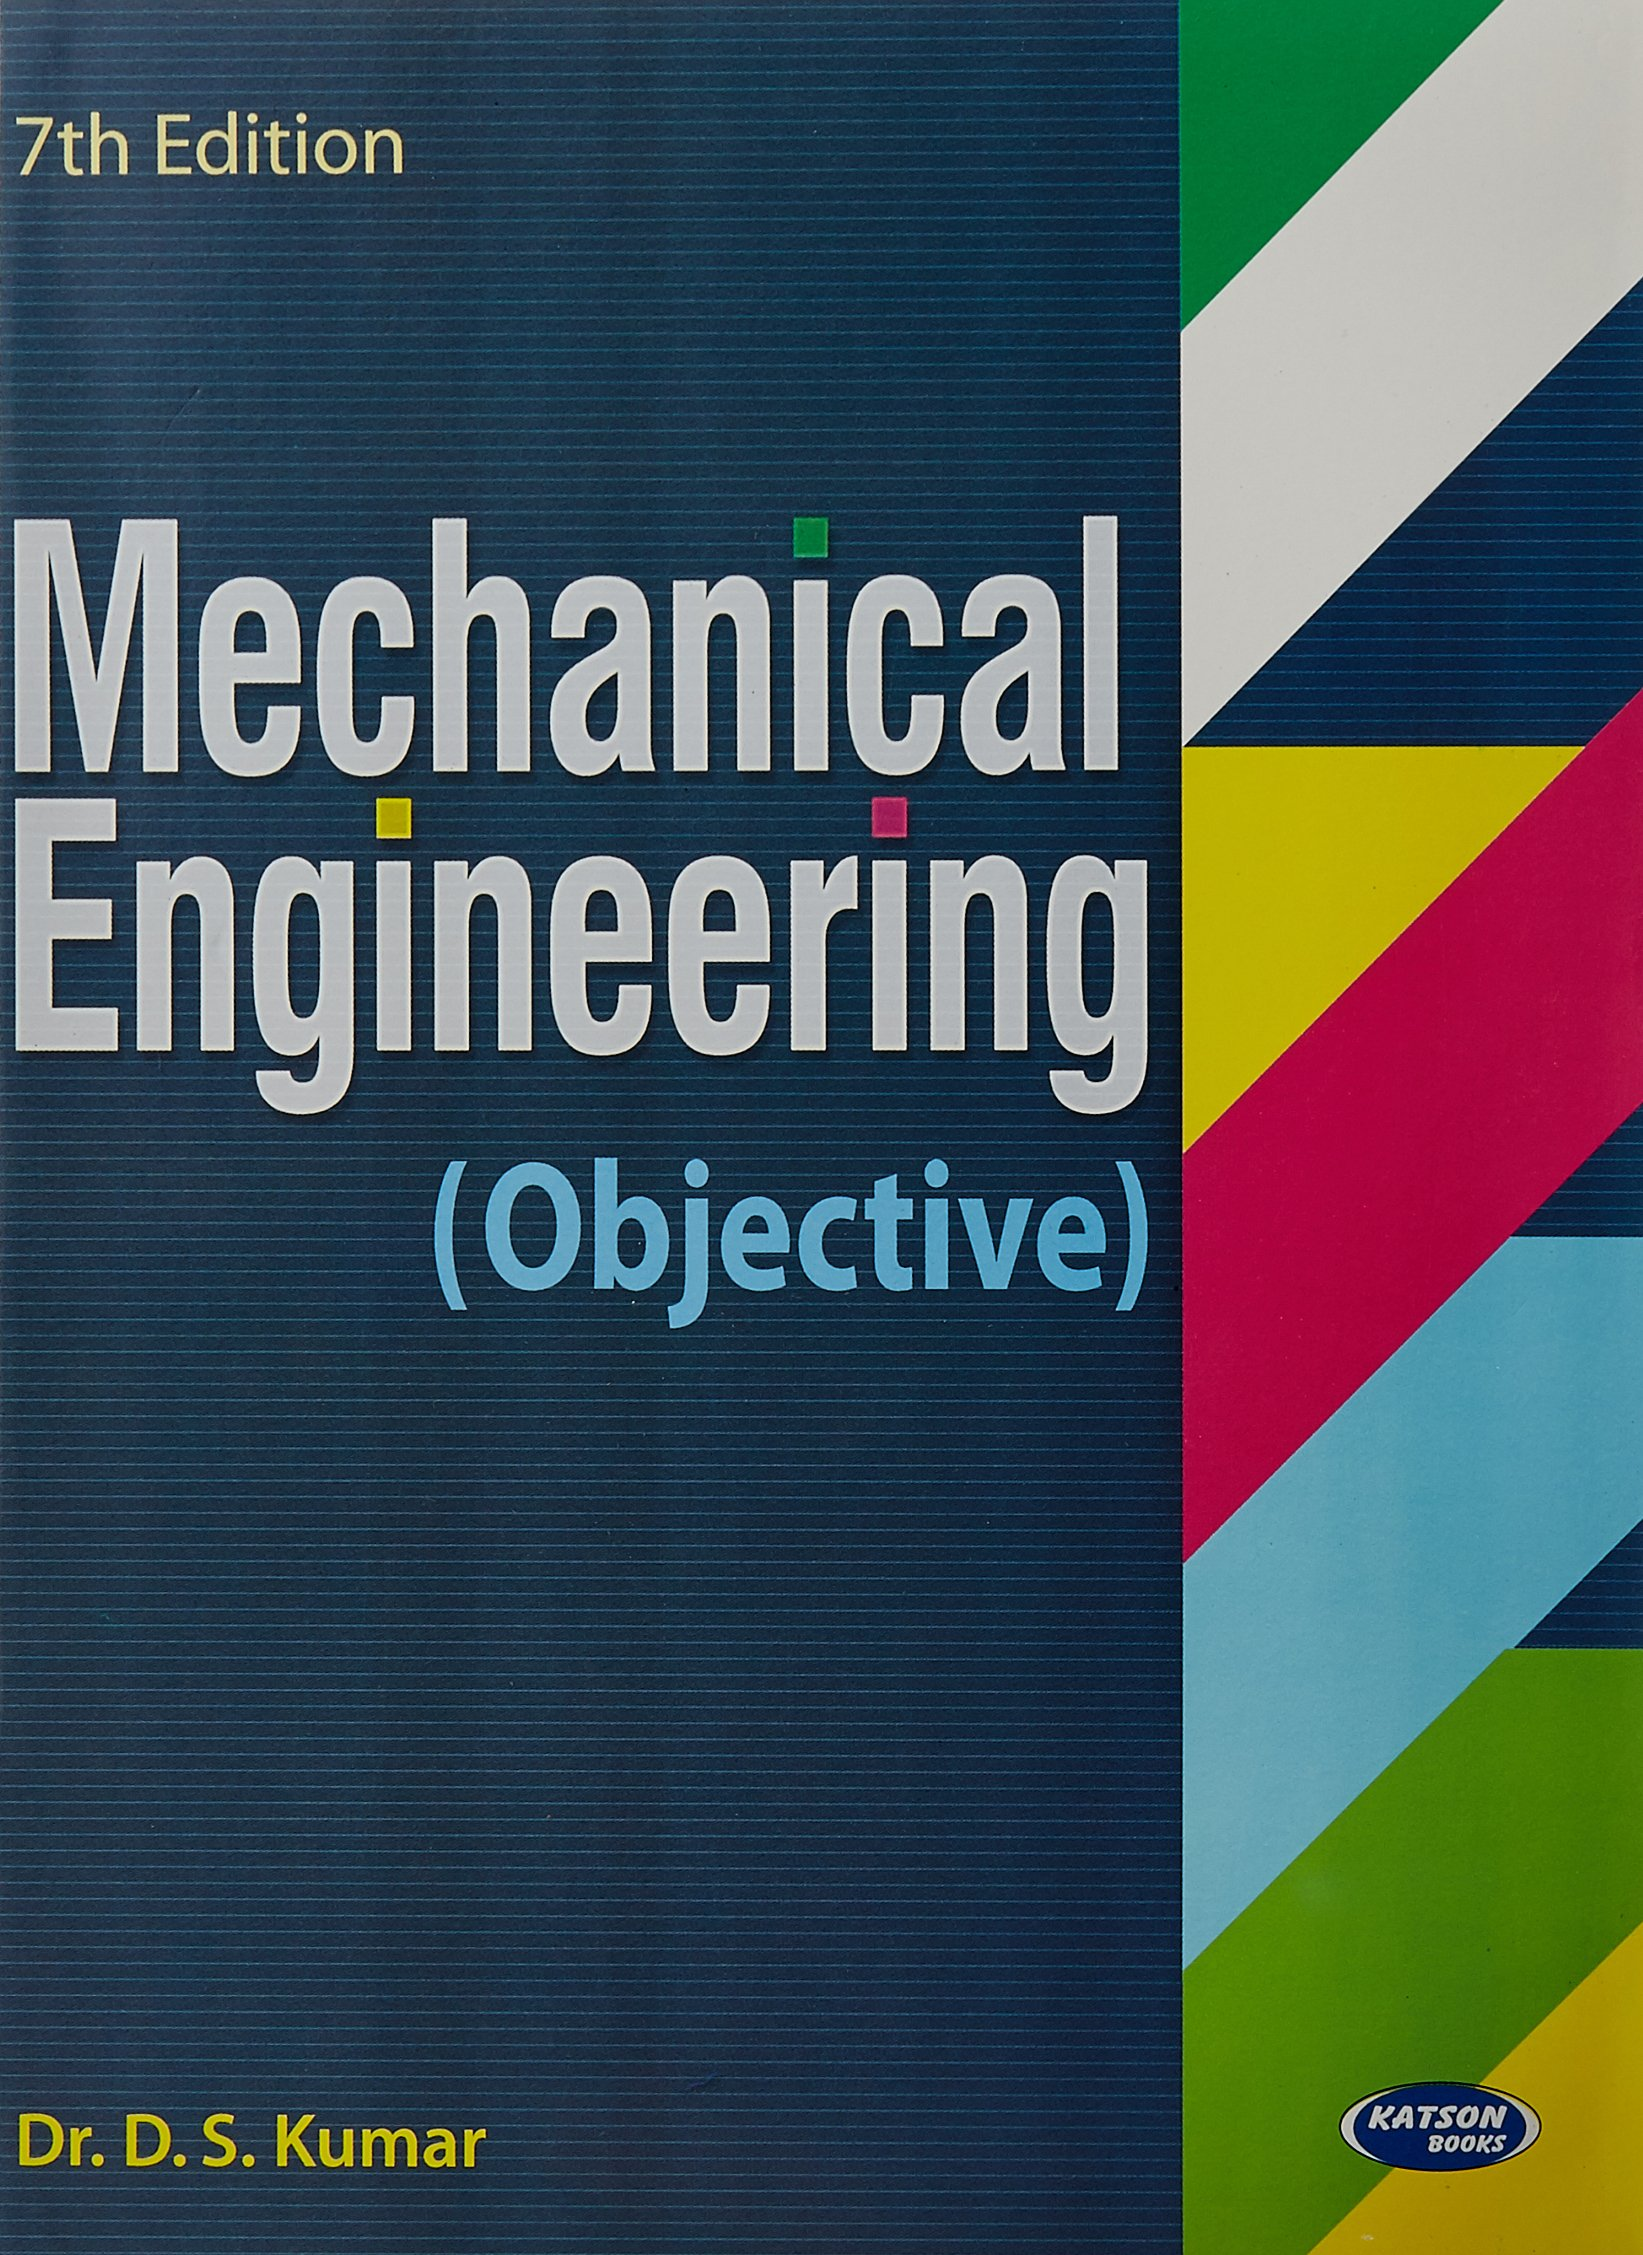 Buy Mechanical Engineering (Objective) for Competitive